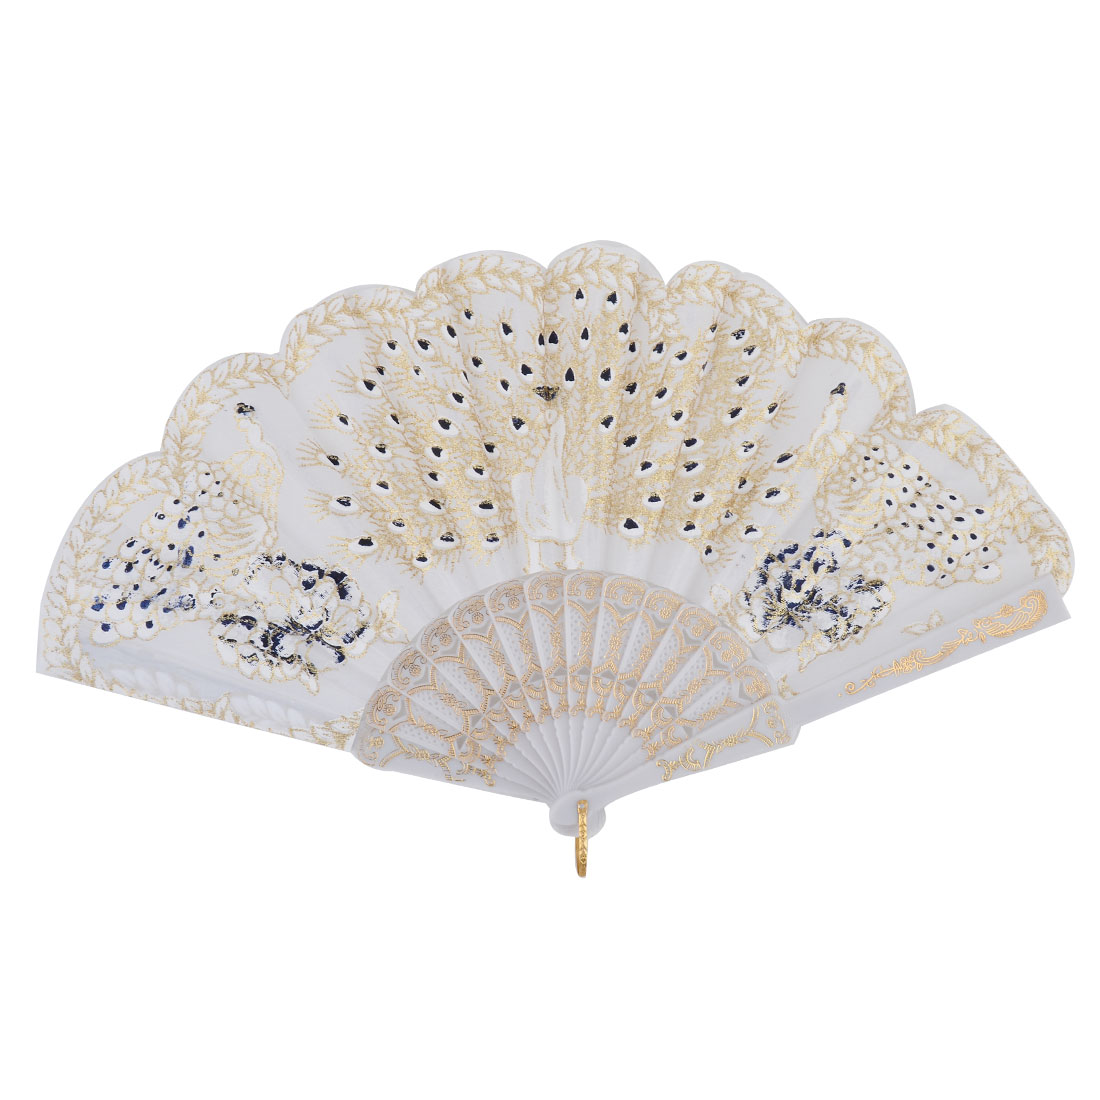 Plastic Carved Frame Glittery Peacock Pattern Dancing Folding Art Hand Fan White